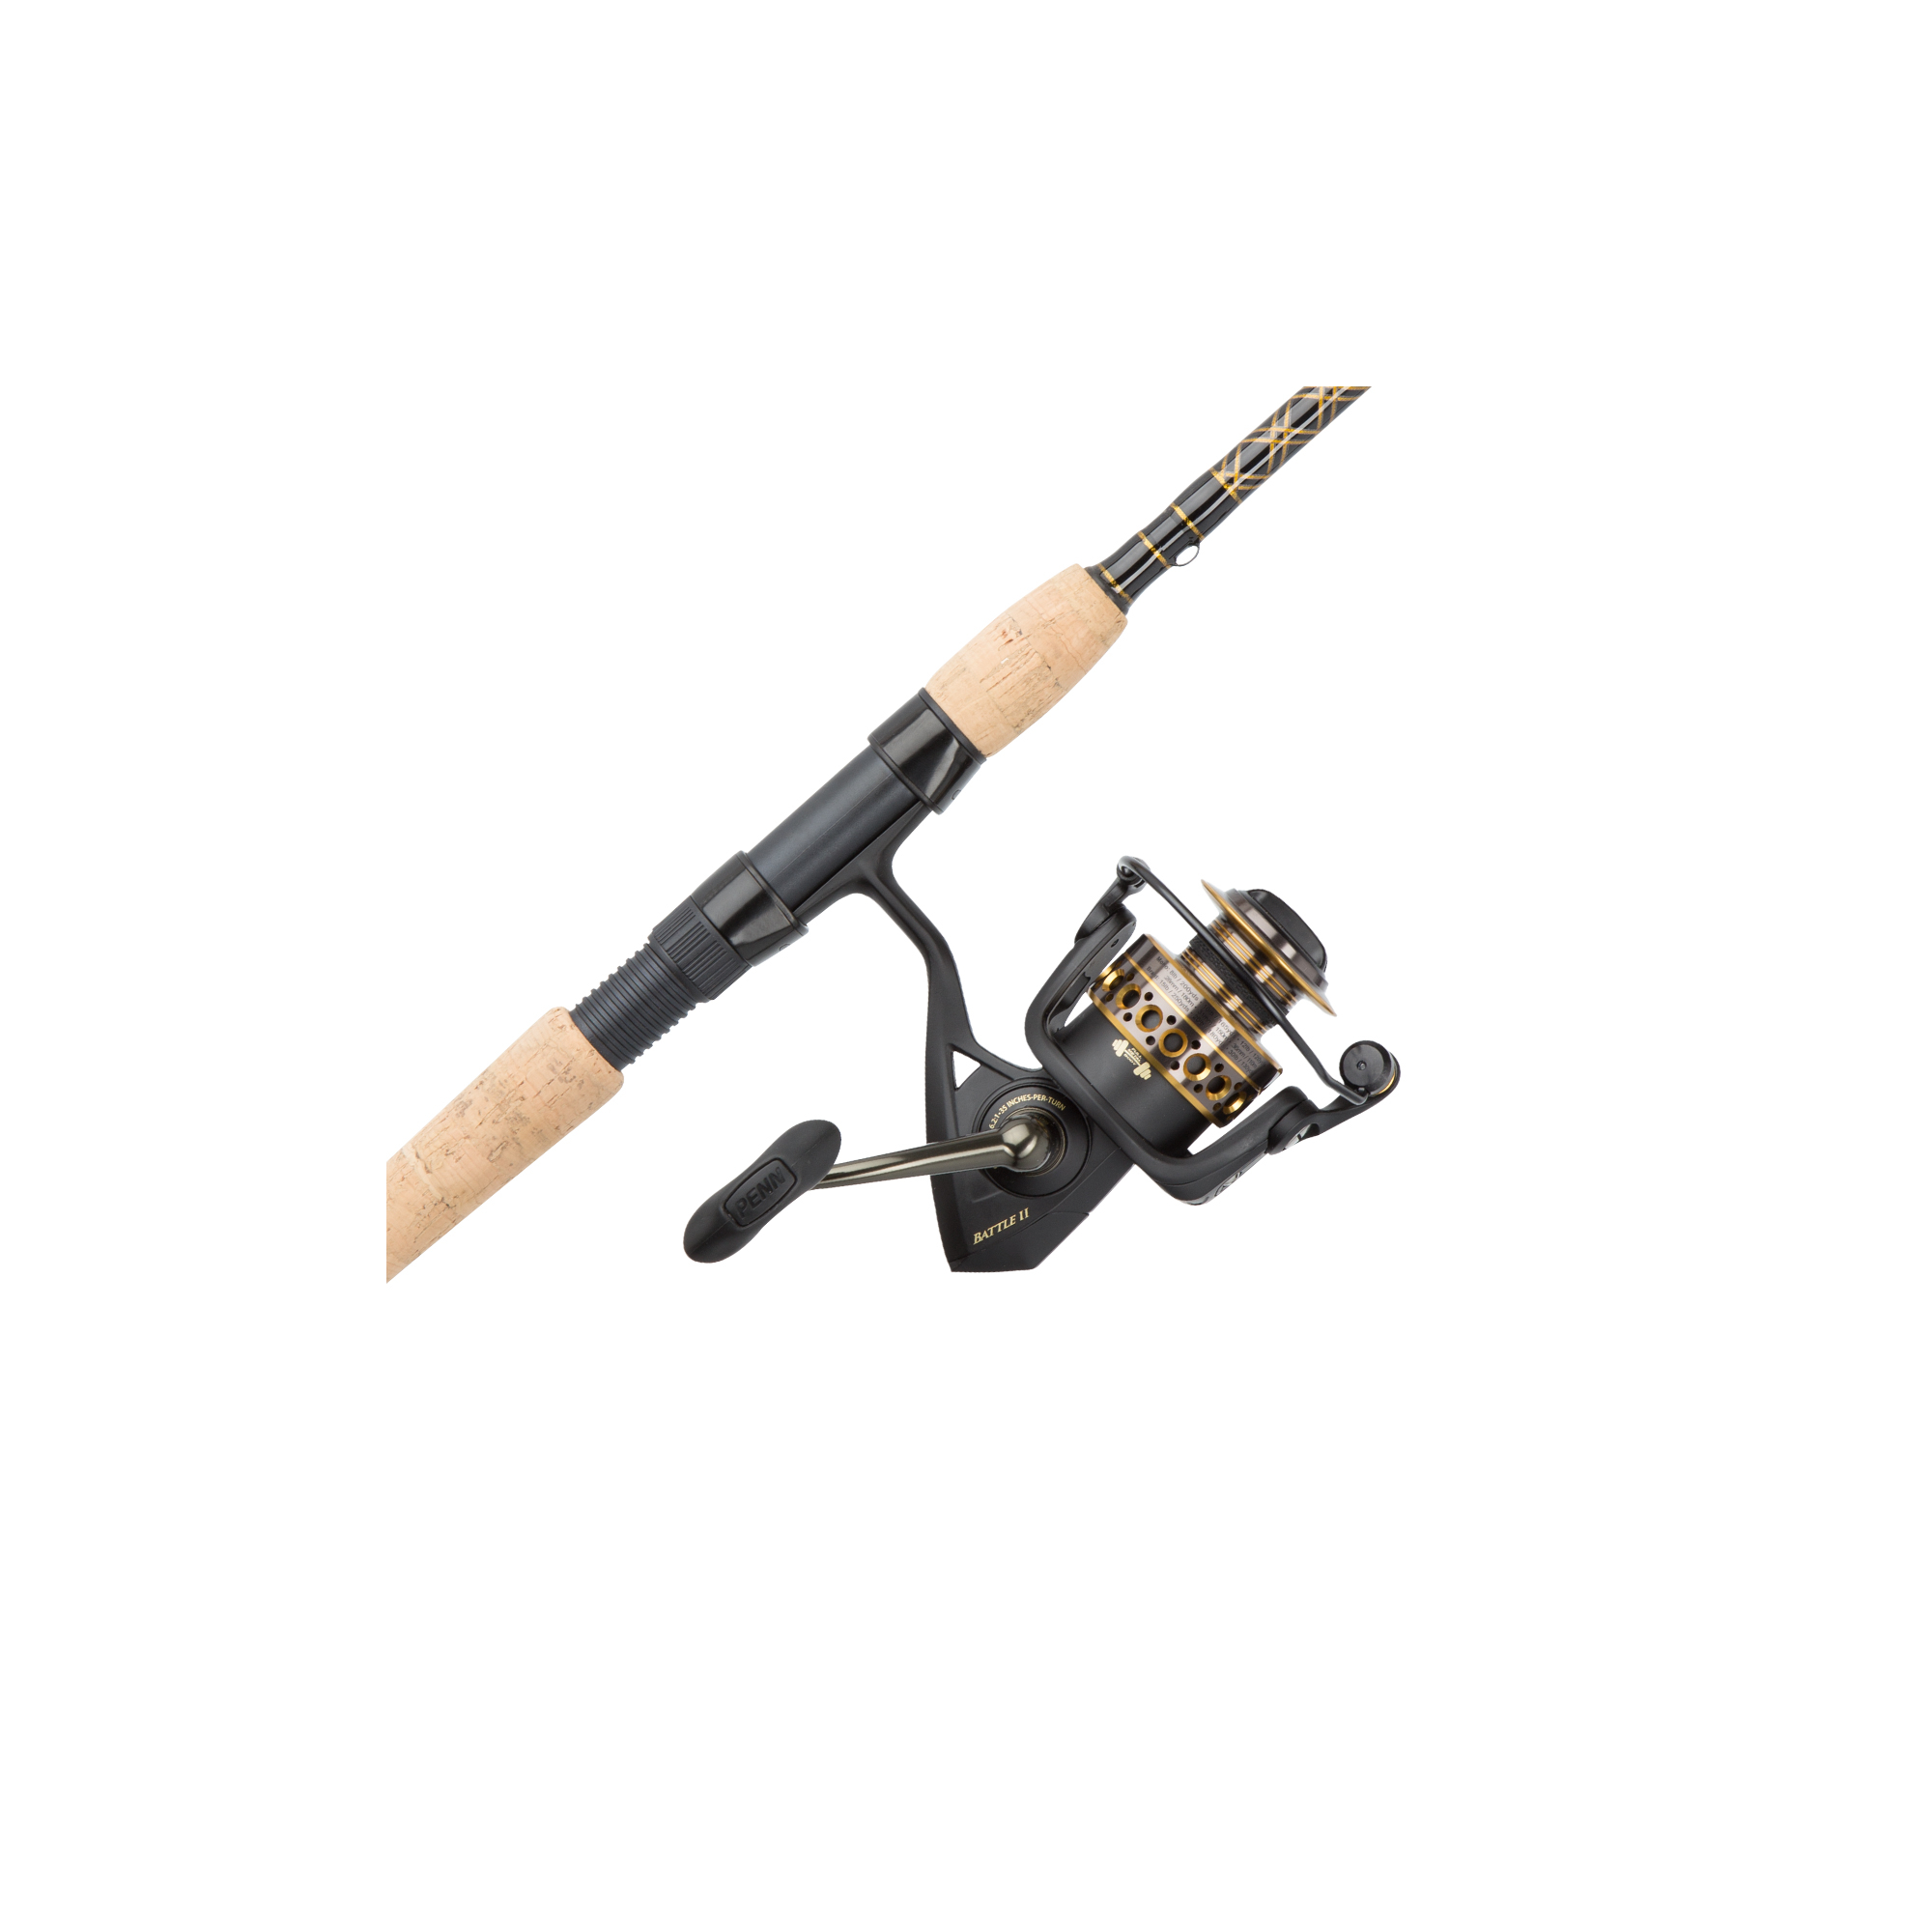 Penn Battle II Spinning Reel and Fishing Rod Combo